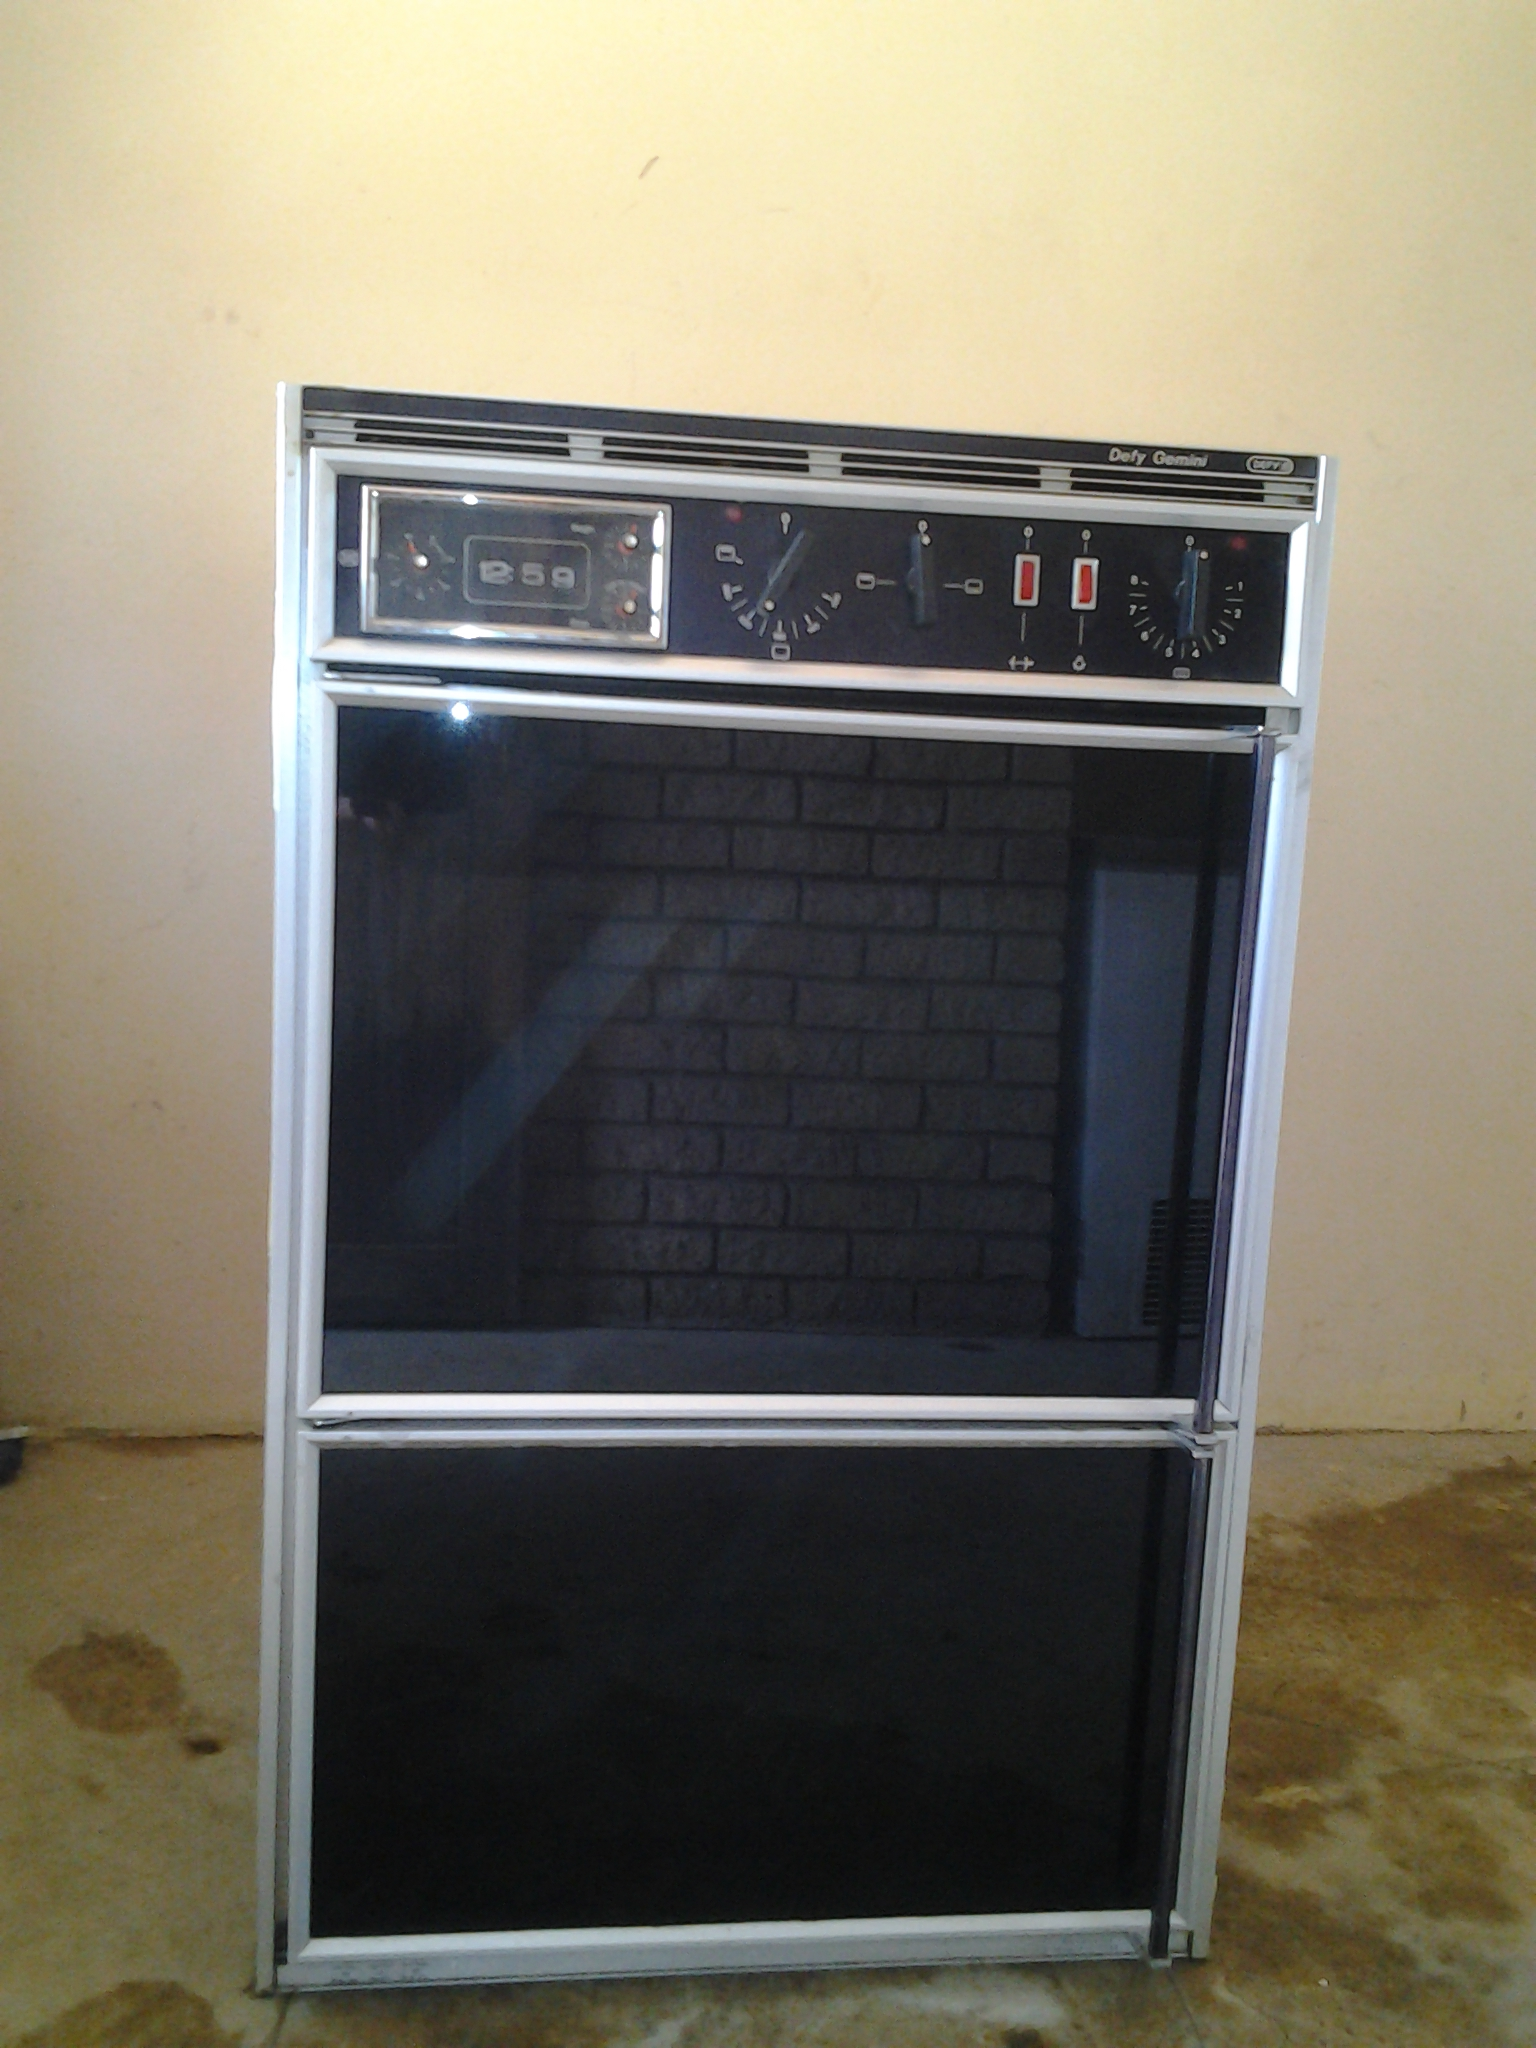 Defy Gemini Oven for Sale